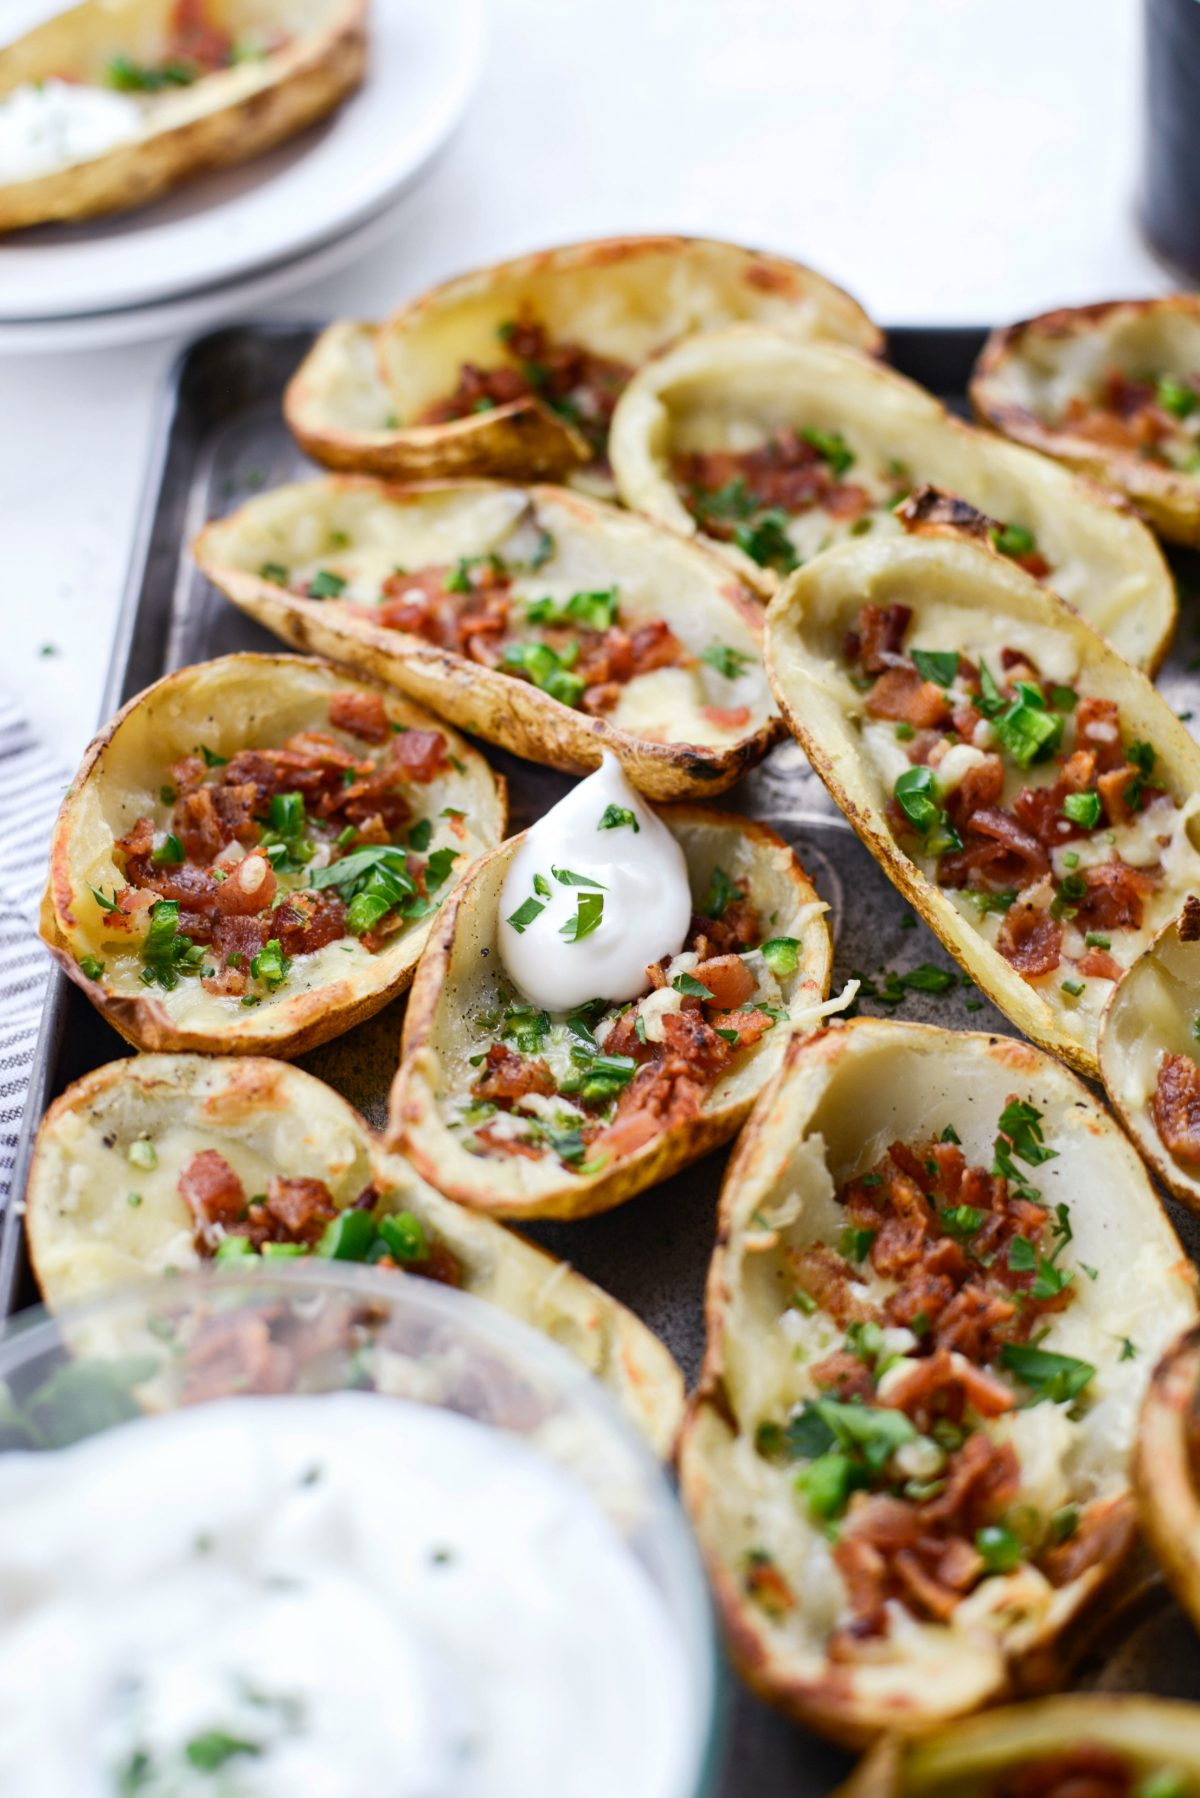 Irish Cheddar Bacon Jalapeño Potato Skins l SimplyScratch.com #stpatricksday #irish #bacon #jalapeno #irishcheddar #potato #potatoskins #snack #appetizer #party